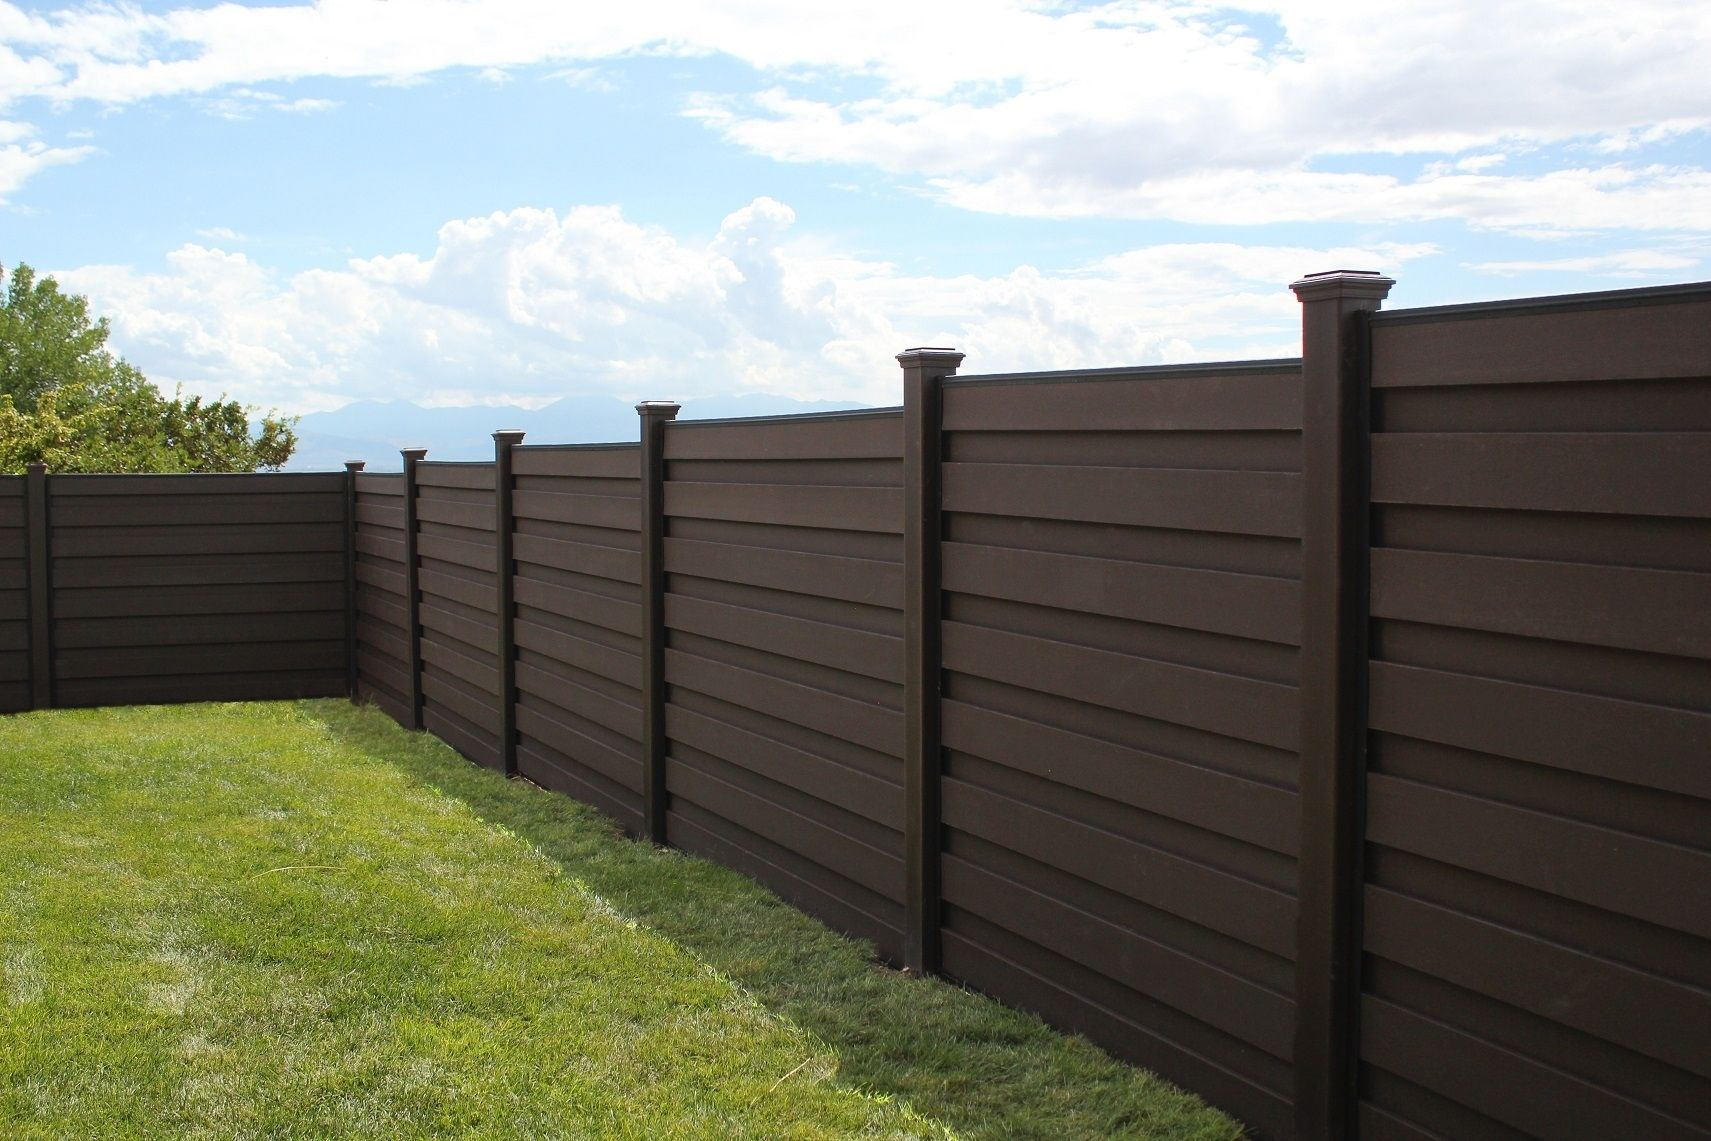 Trex Horizons In Woodland Brown Horizontal Fencing Stepping Down A Gradual Slope In The Yard Fence Design Horizontal Fence Building A Fence